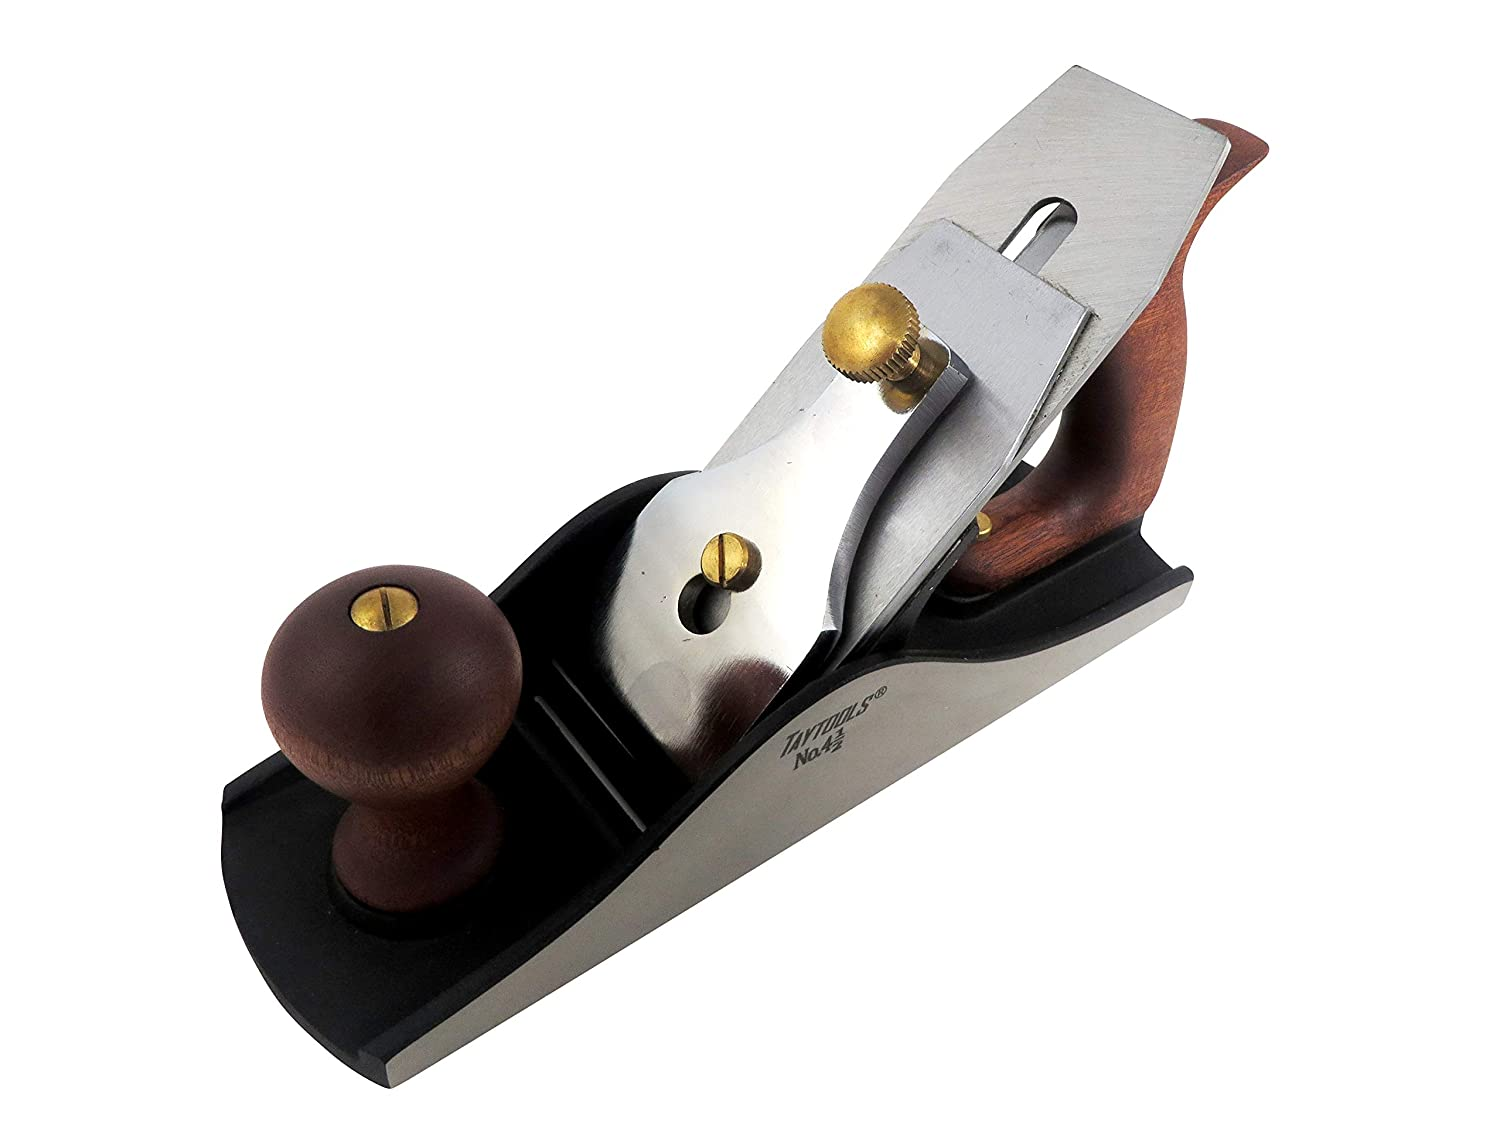 Blade RHC 55-60 10-1//4 Inch Sole Taytools 465951 Smoothing Bench Hand Plane #4-1//2 Lapped Sides and Bottom Ductile Cast Body Sapele Handle and Tote